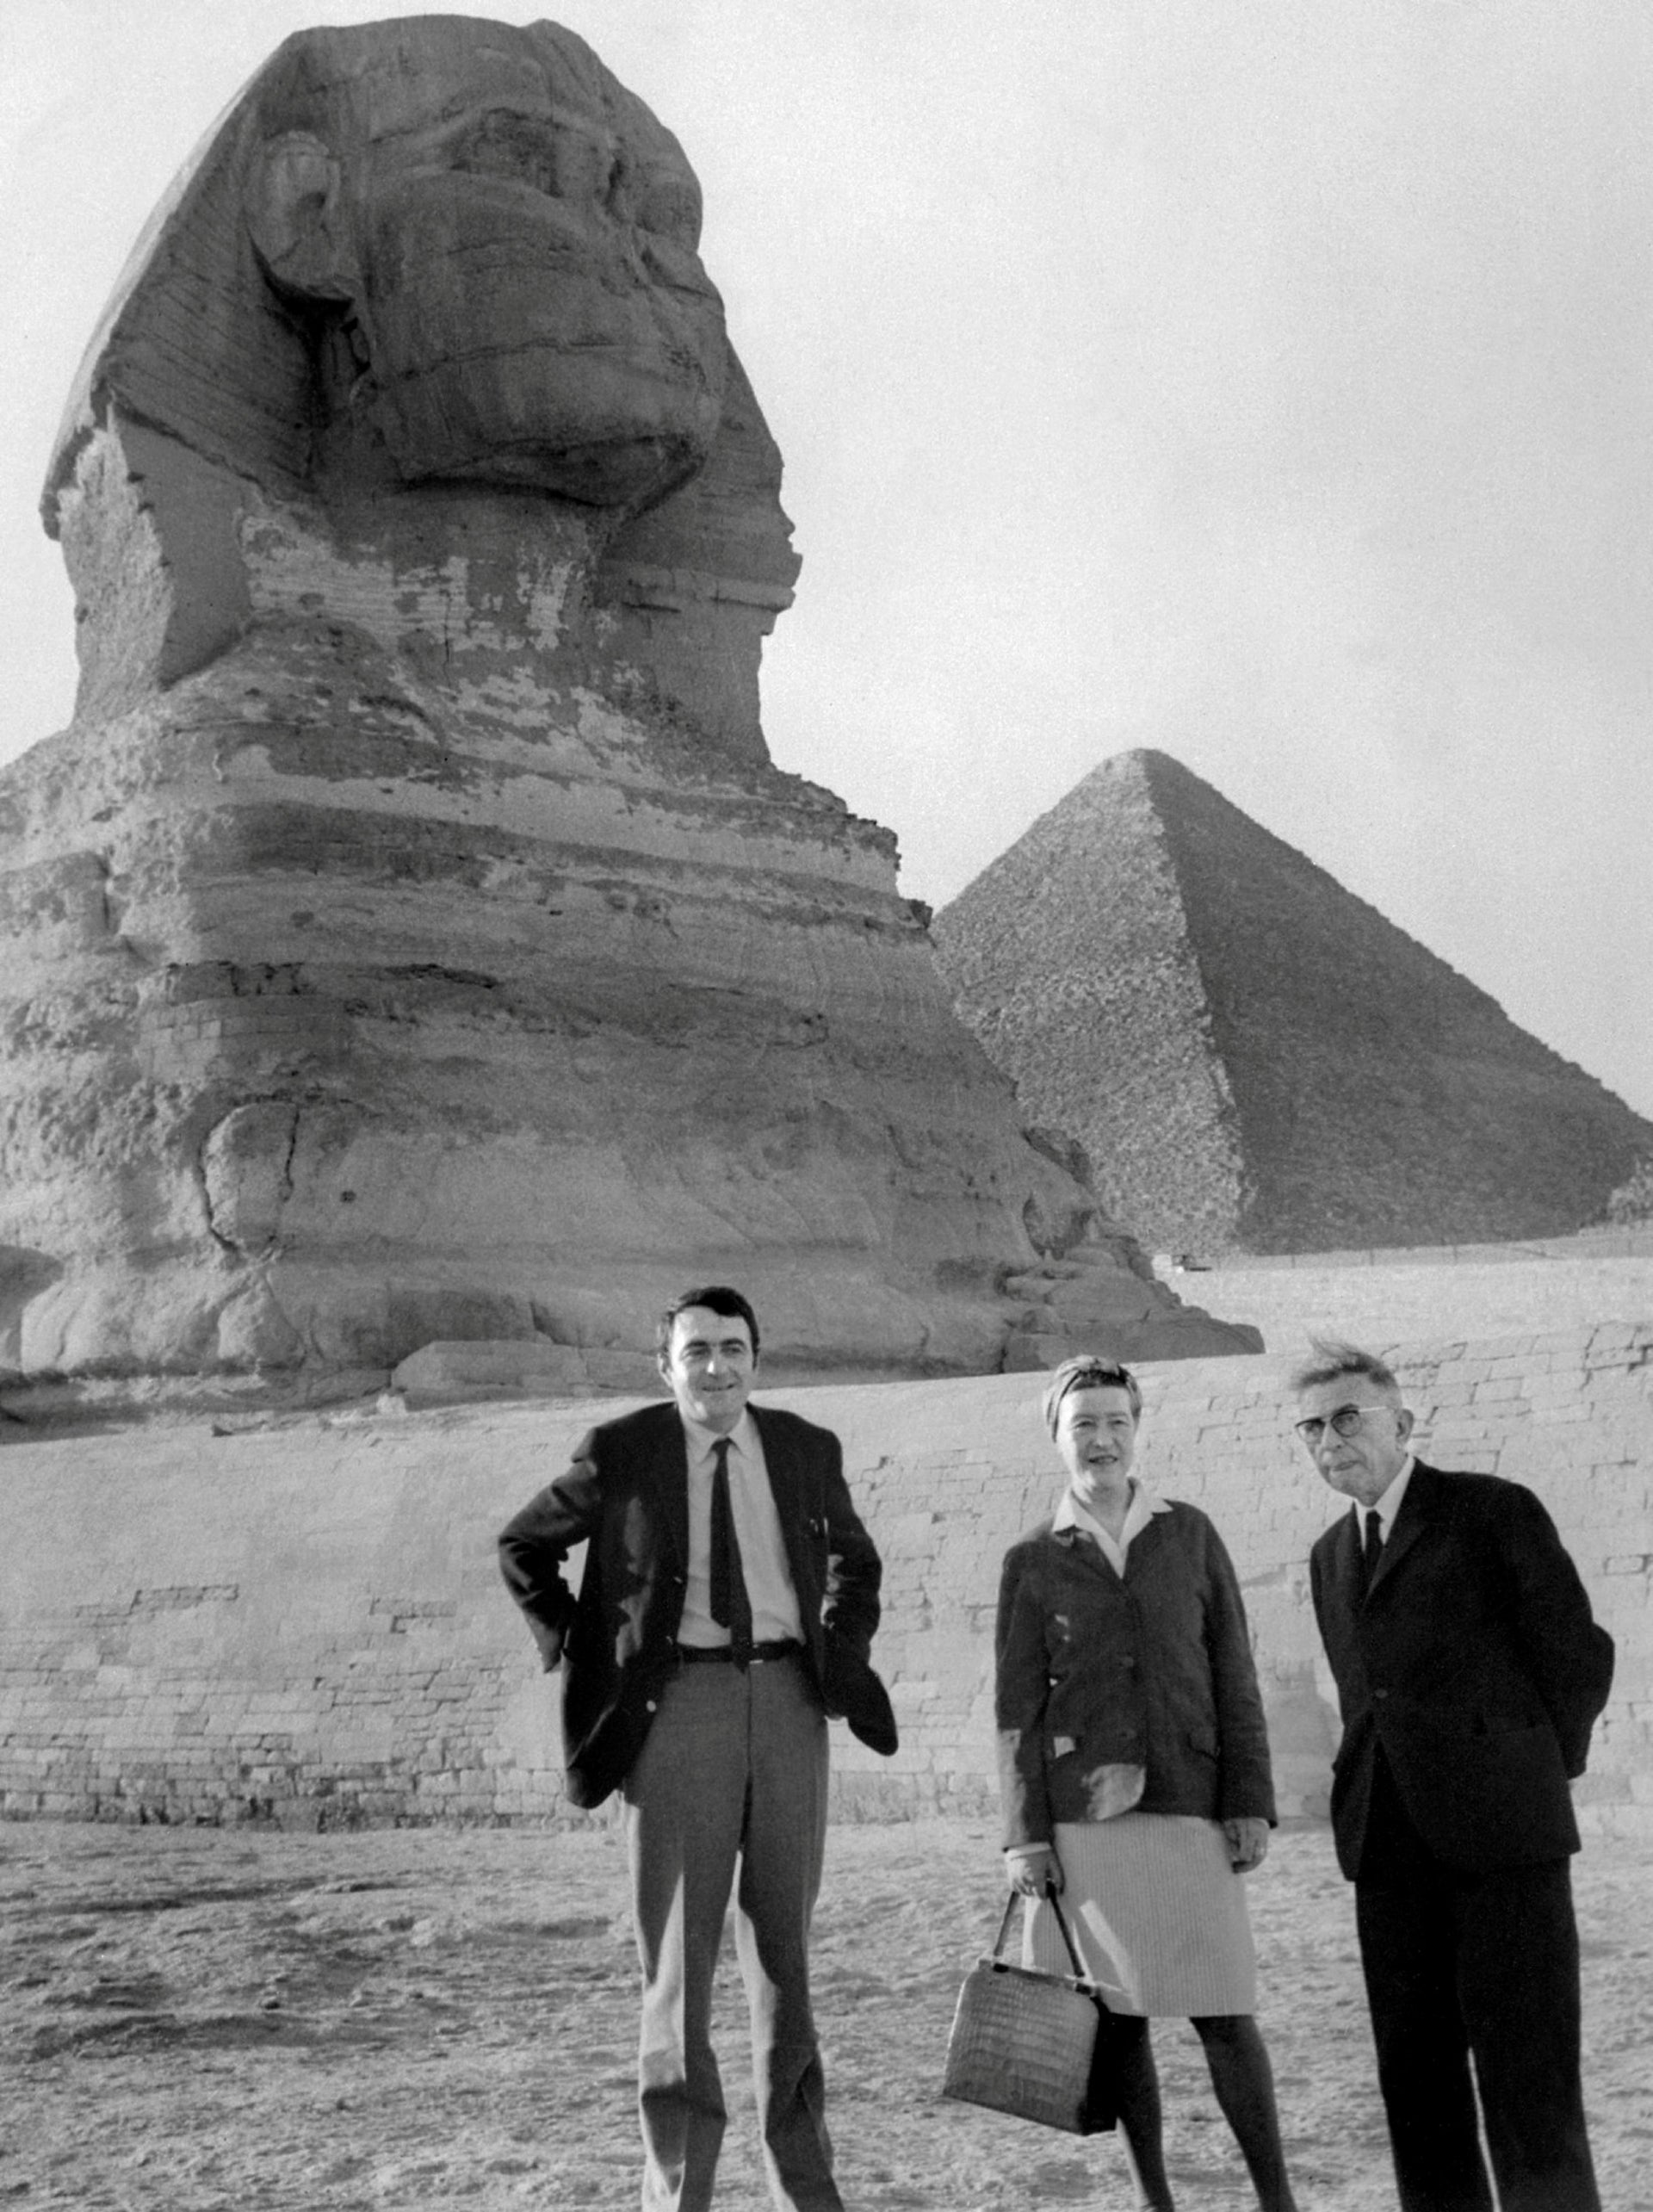 French philosopher Jean-Paul Sartre (R), French writer Simone de Beauvoir and film director Claude Lanzmann (L), visit the Pyramids in Egypt, March 4, 1967.